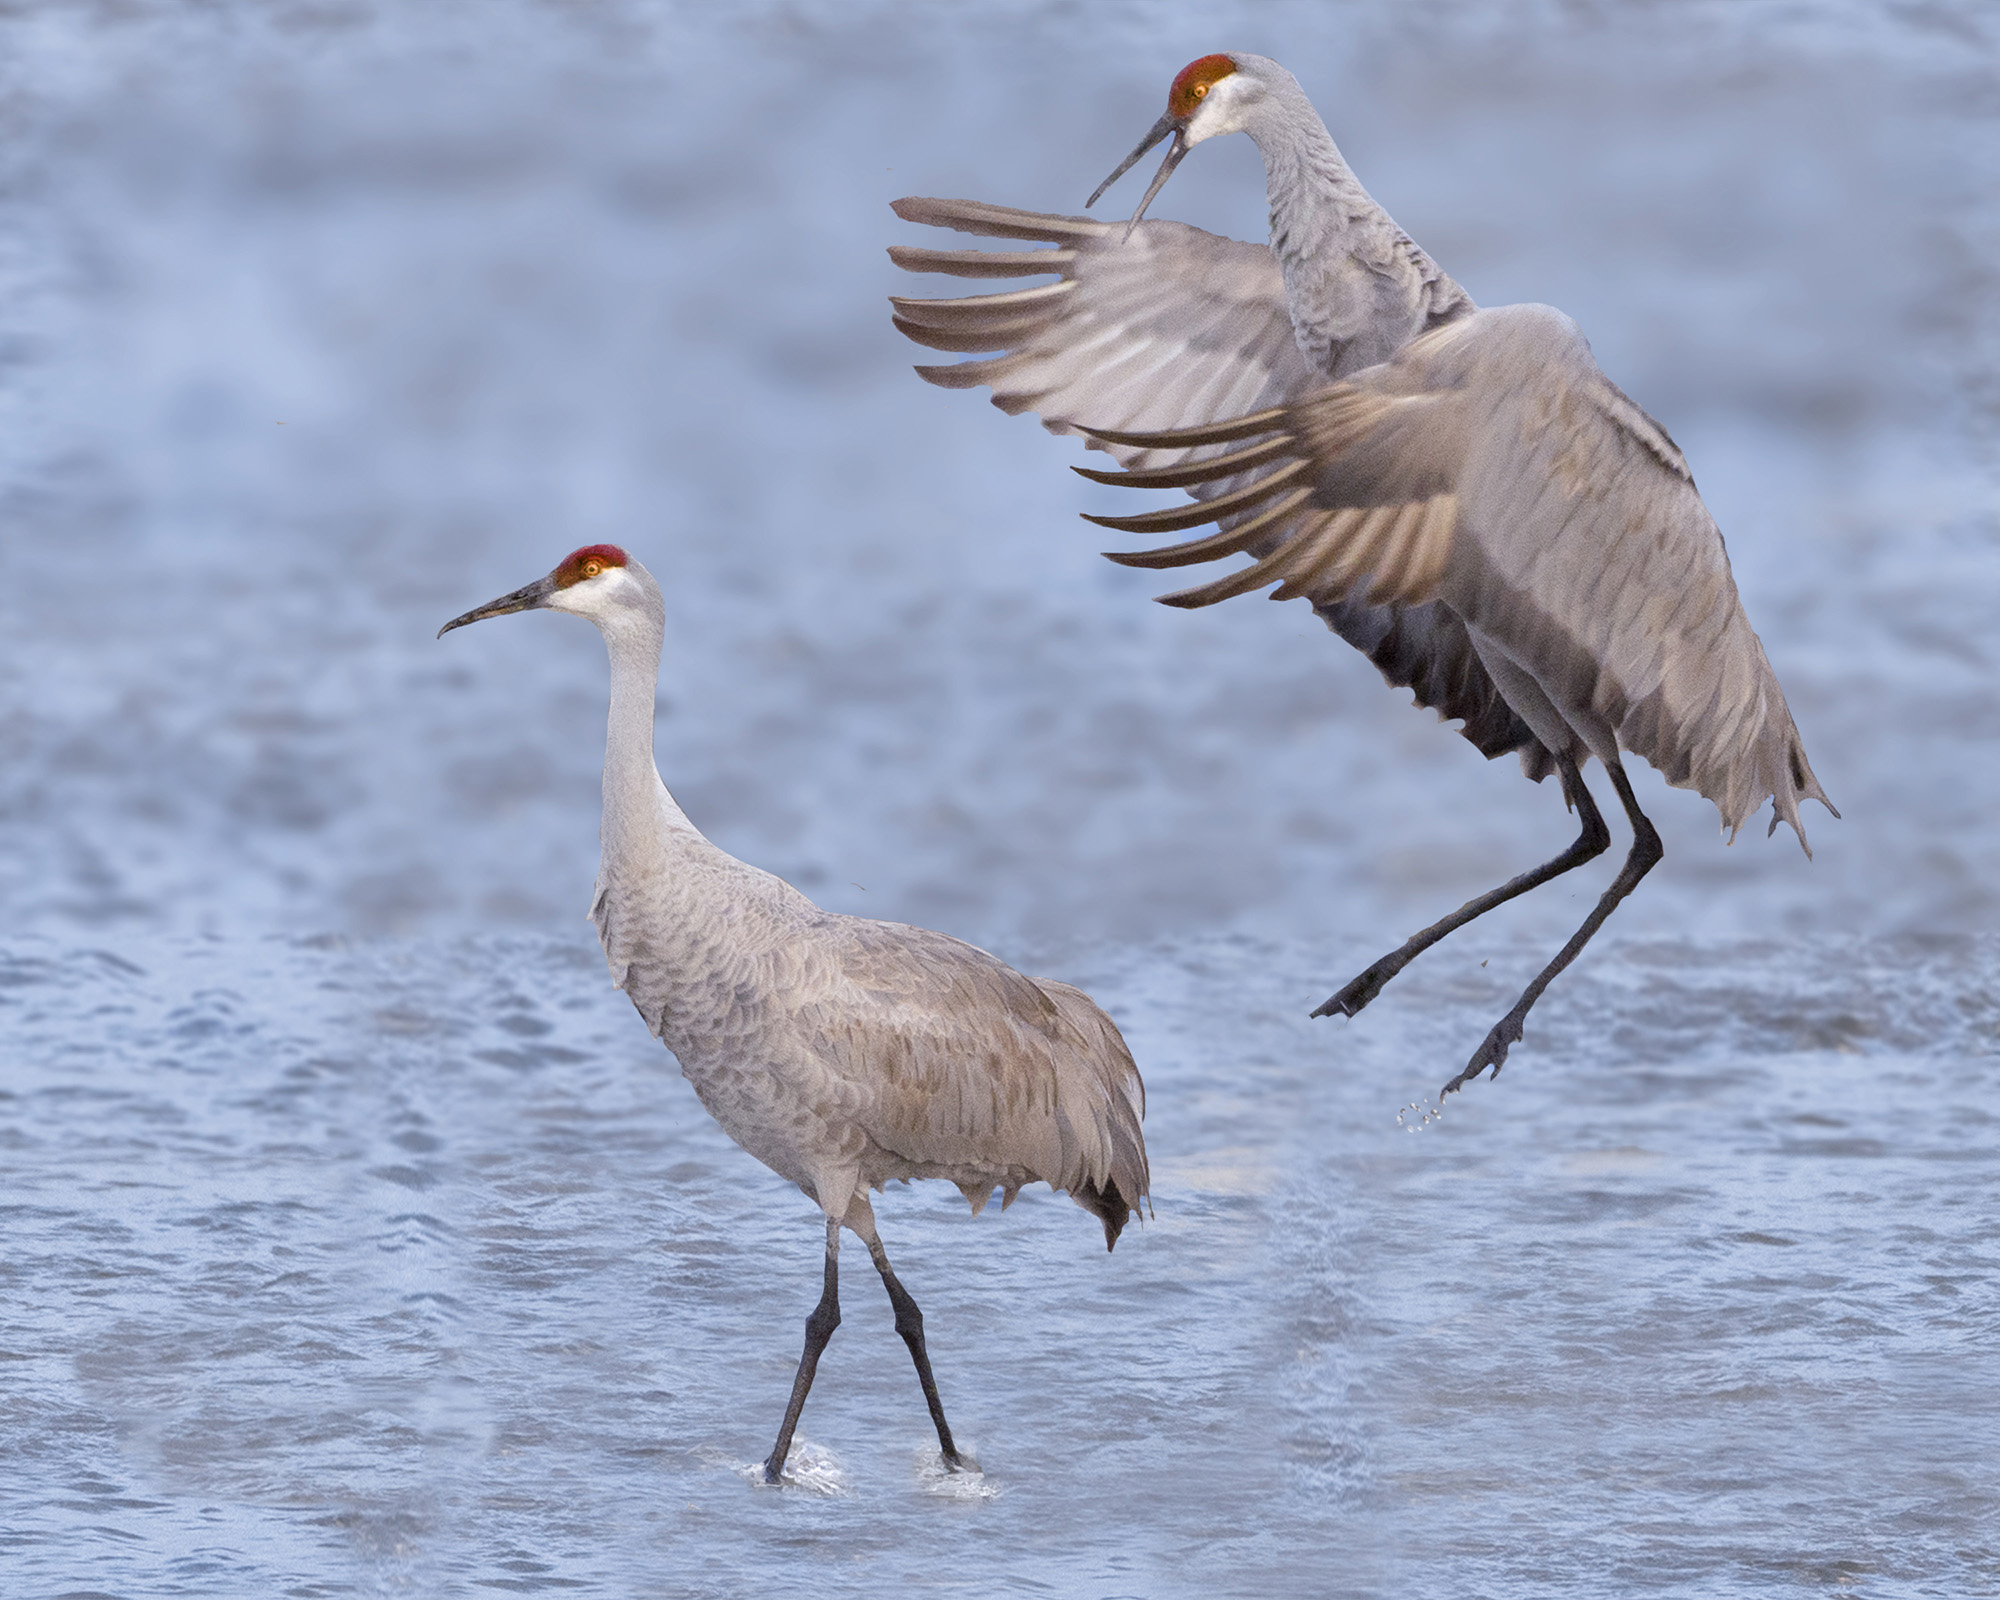 Photograph of a crane leaping at another crane behind its back